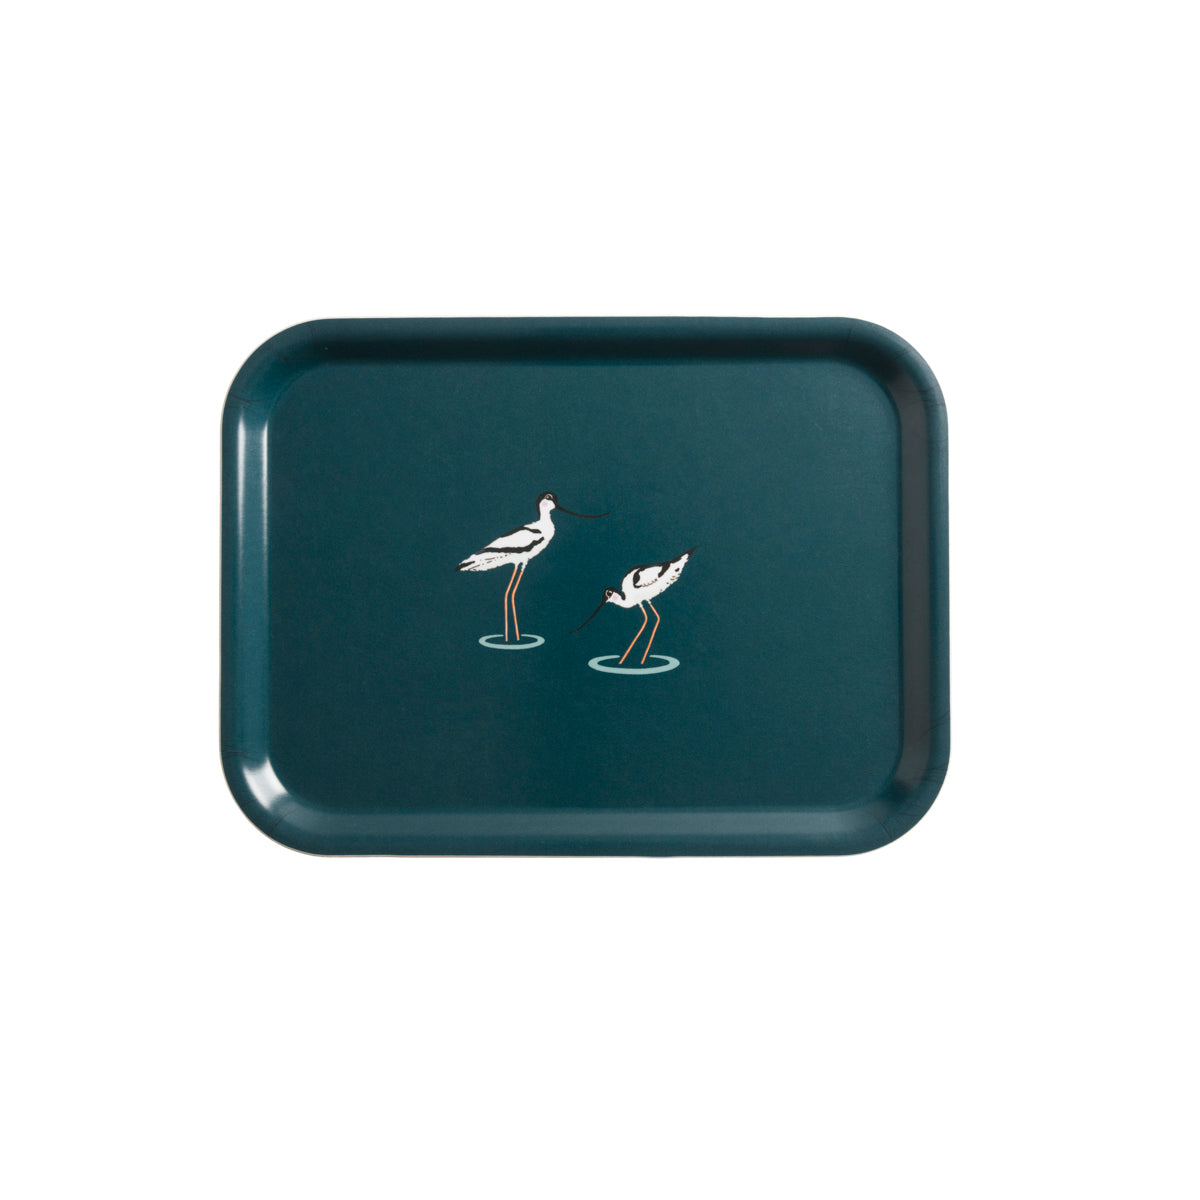 Navy Printed Tray with Sophie Allport's Coastal Birds on